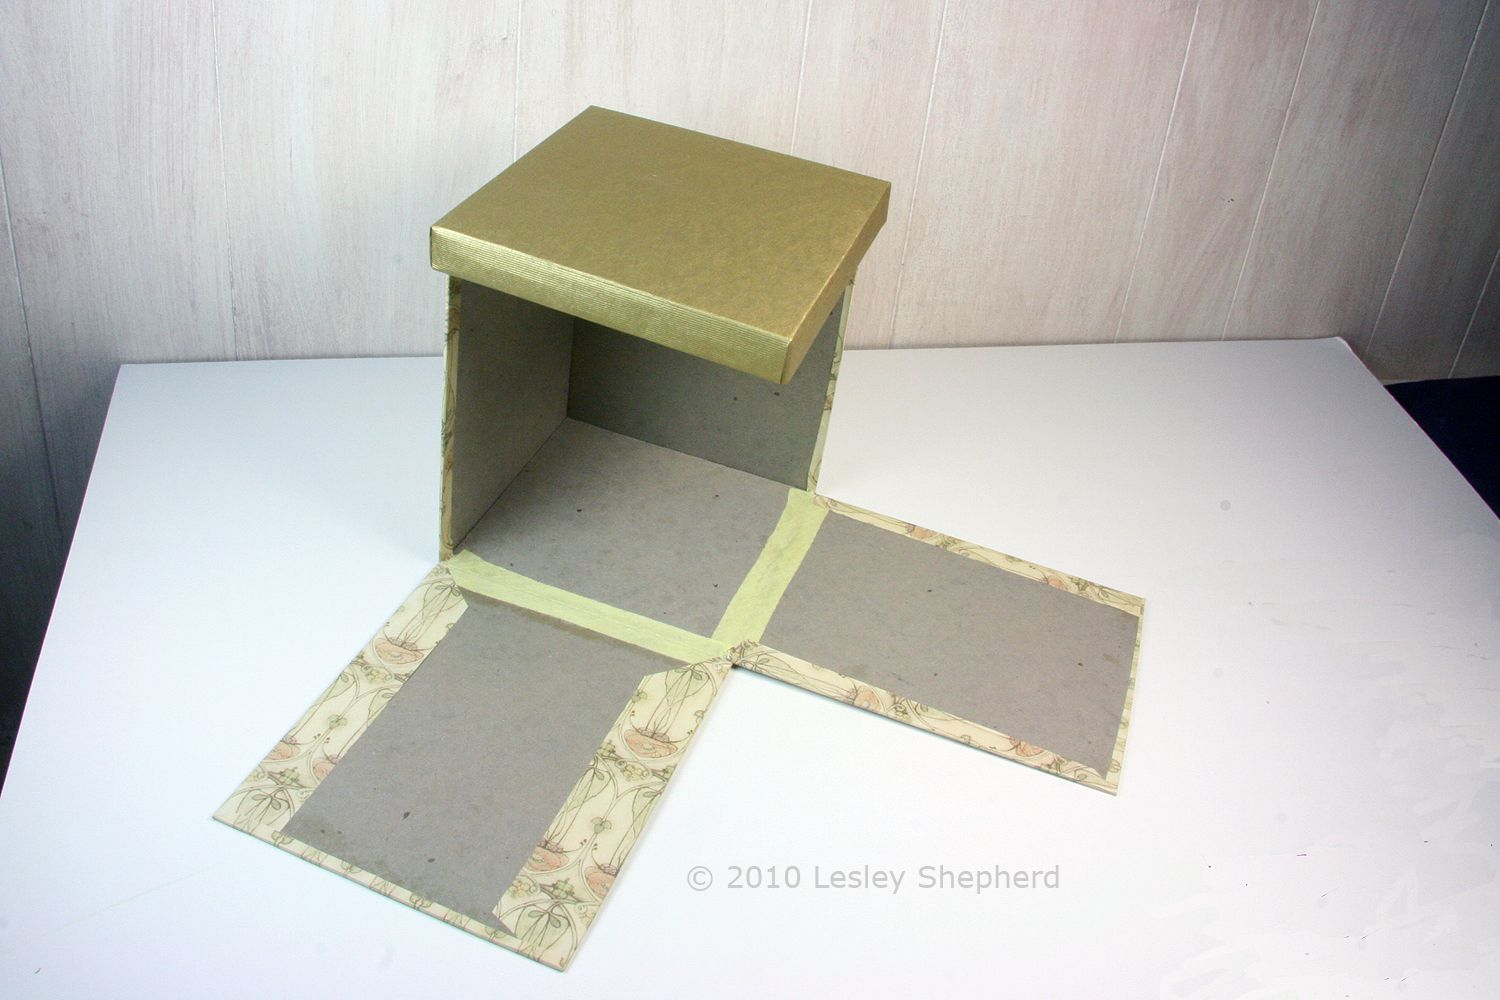 How to Build Room Boxes for Dollhouses or Model Scenes